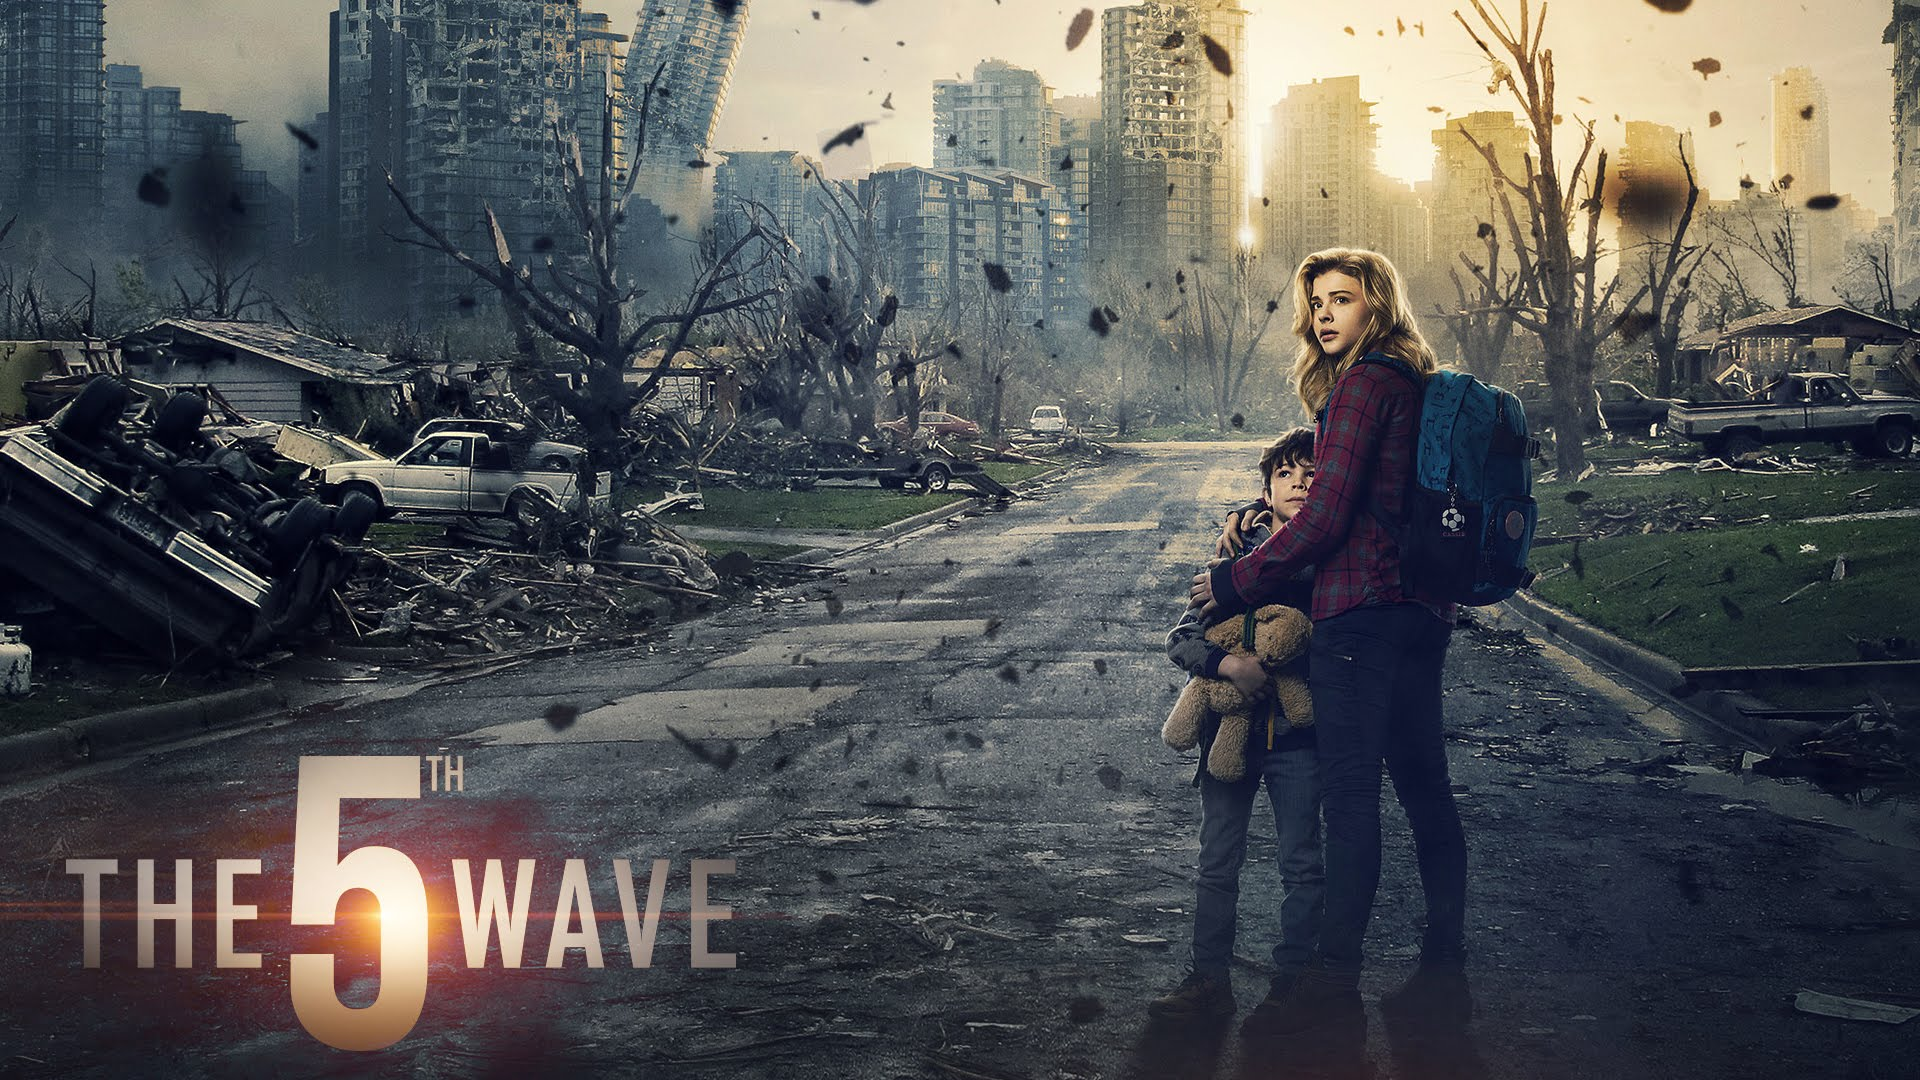 The main characters, a teenage girl and her younger brother, embrace in the midst of a decimated city filled with debris in the movie adaptation of the YA novel The 5th Wave.